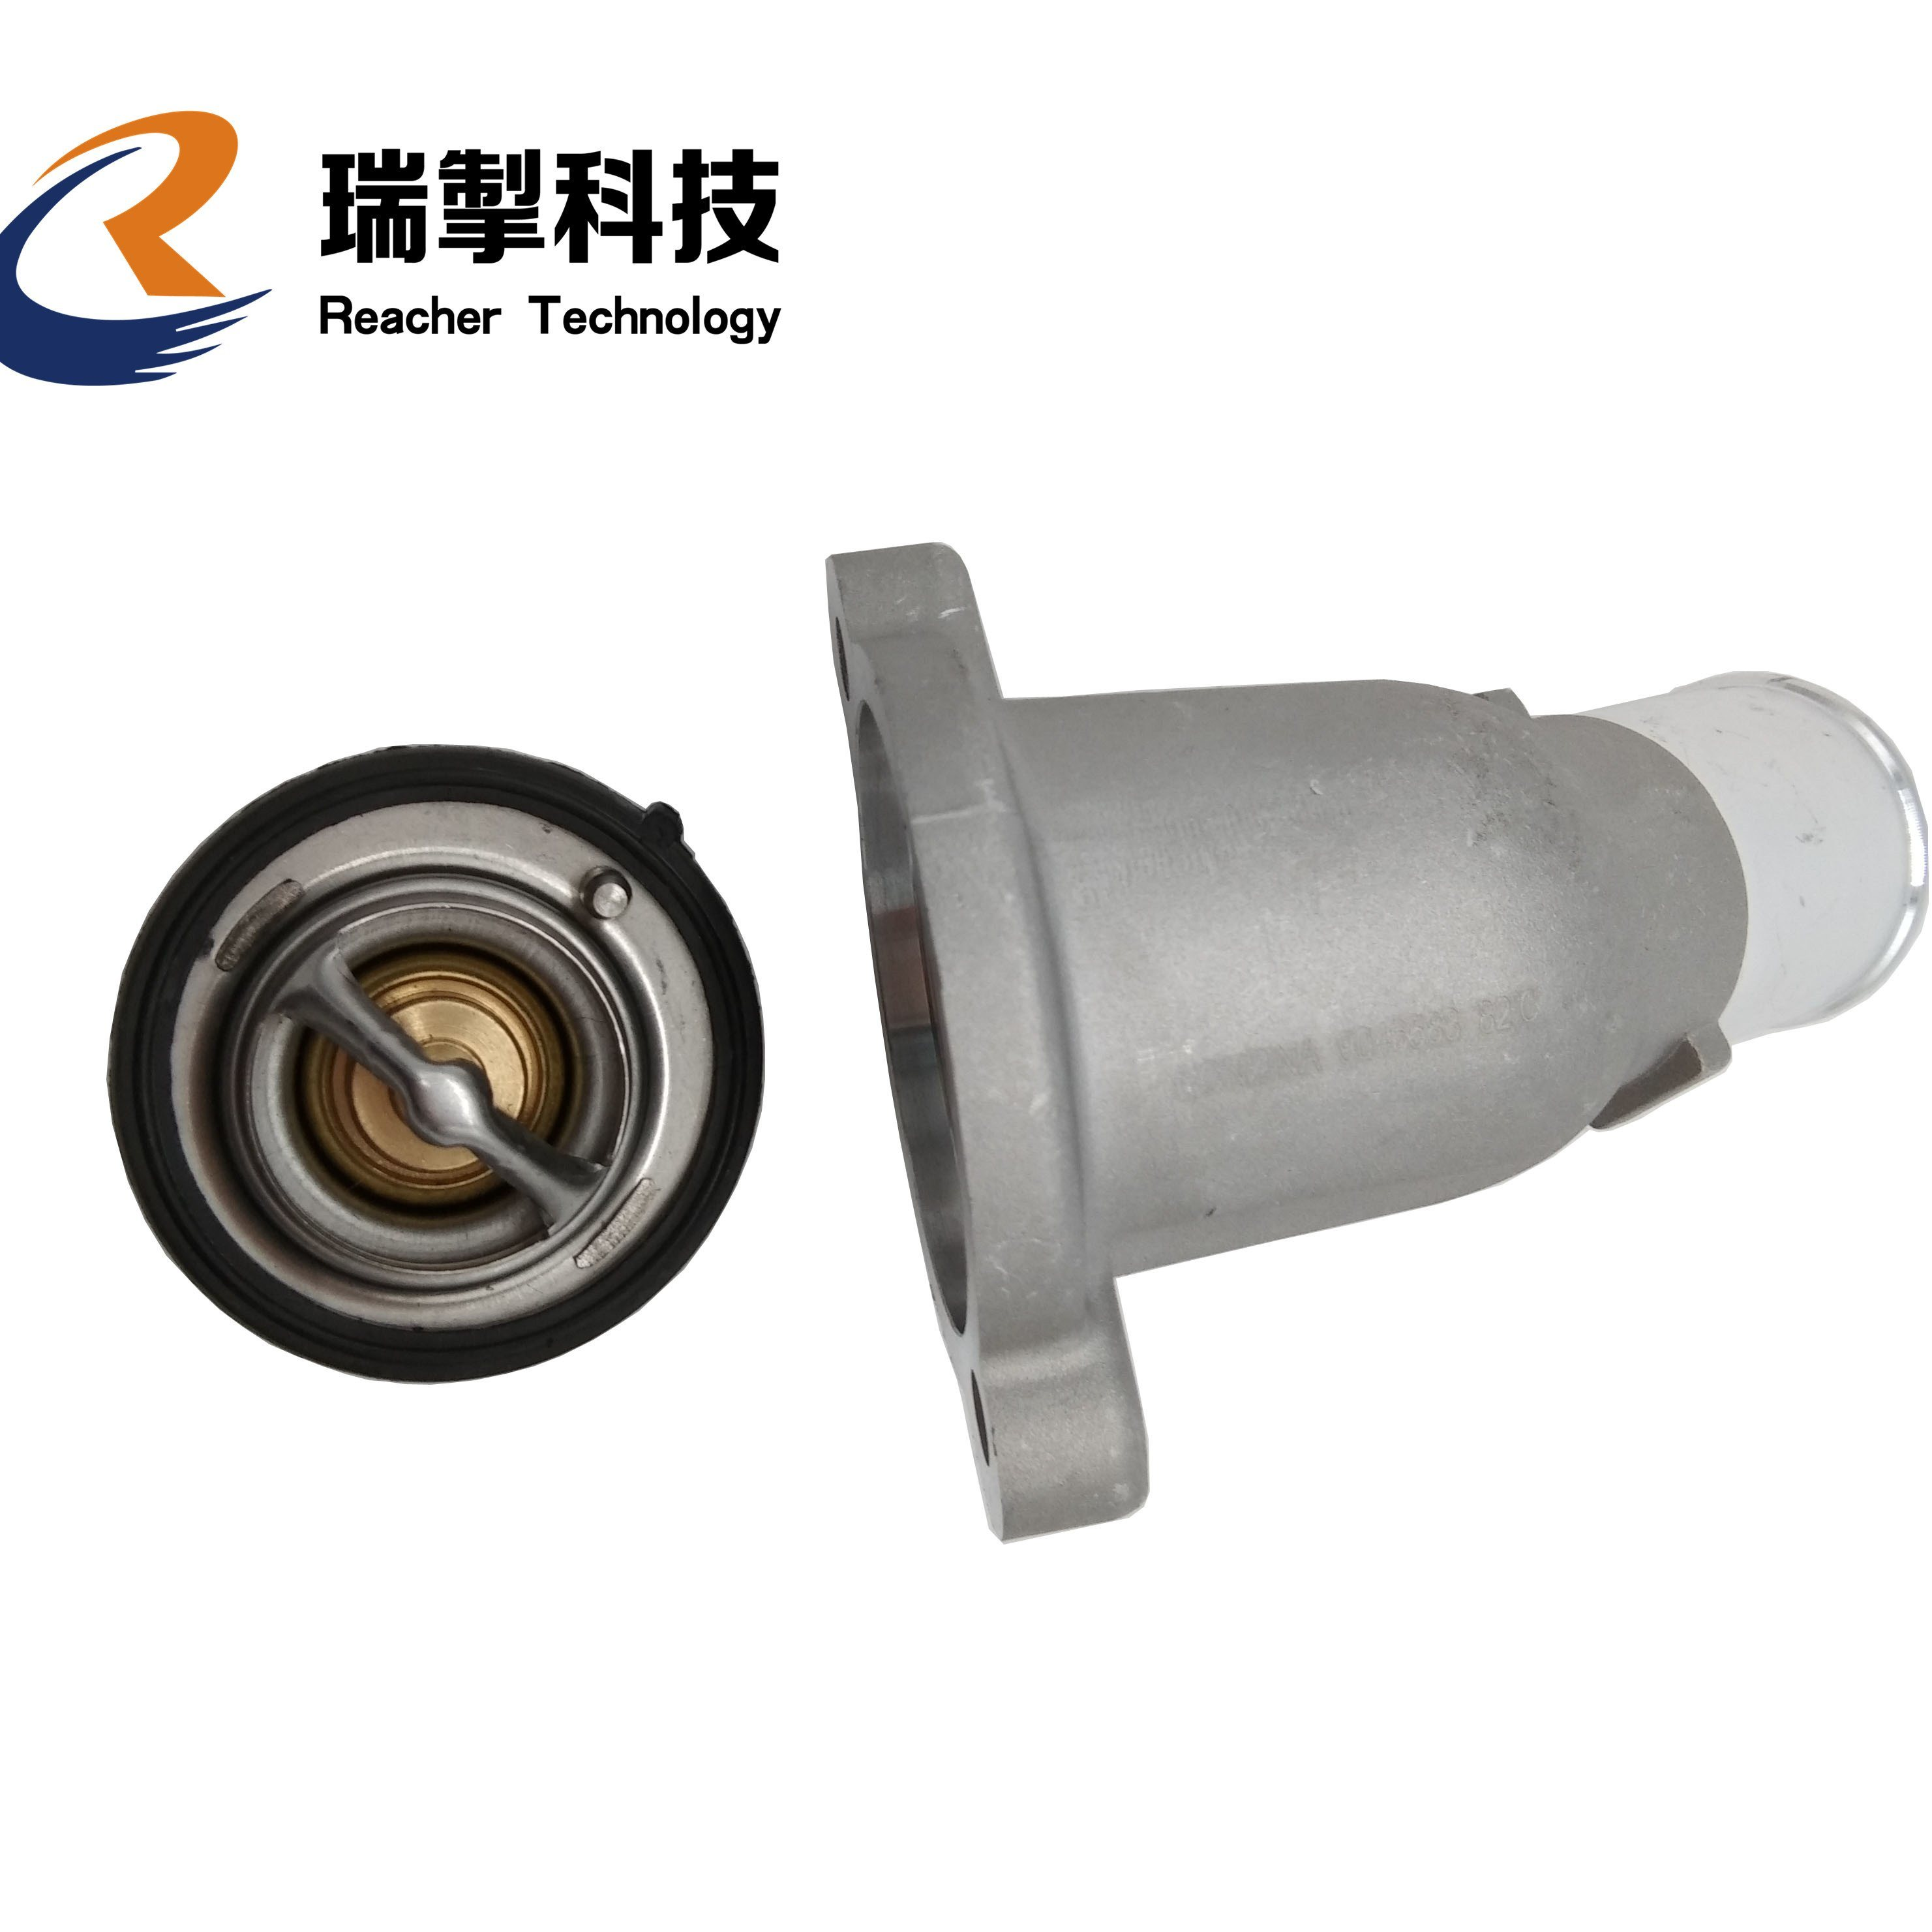 China Thermostat Used for Chevrolet Engine Coolant Thermostat 9046588 -  China Chevrolet, Housing | Chevrolet Engine Coolant |  | Hefei Reacher Technology Co., Ltd.